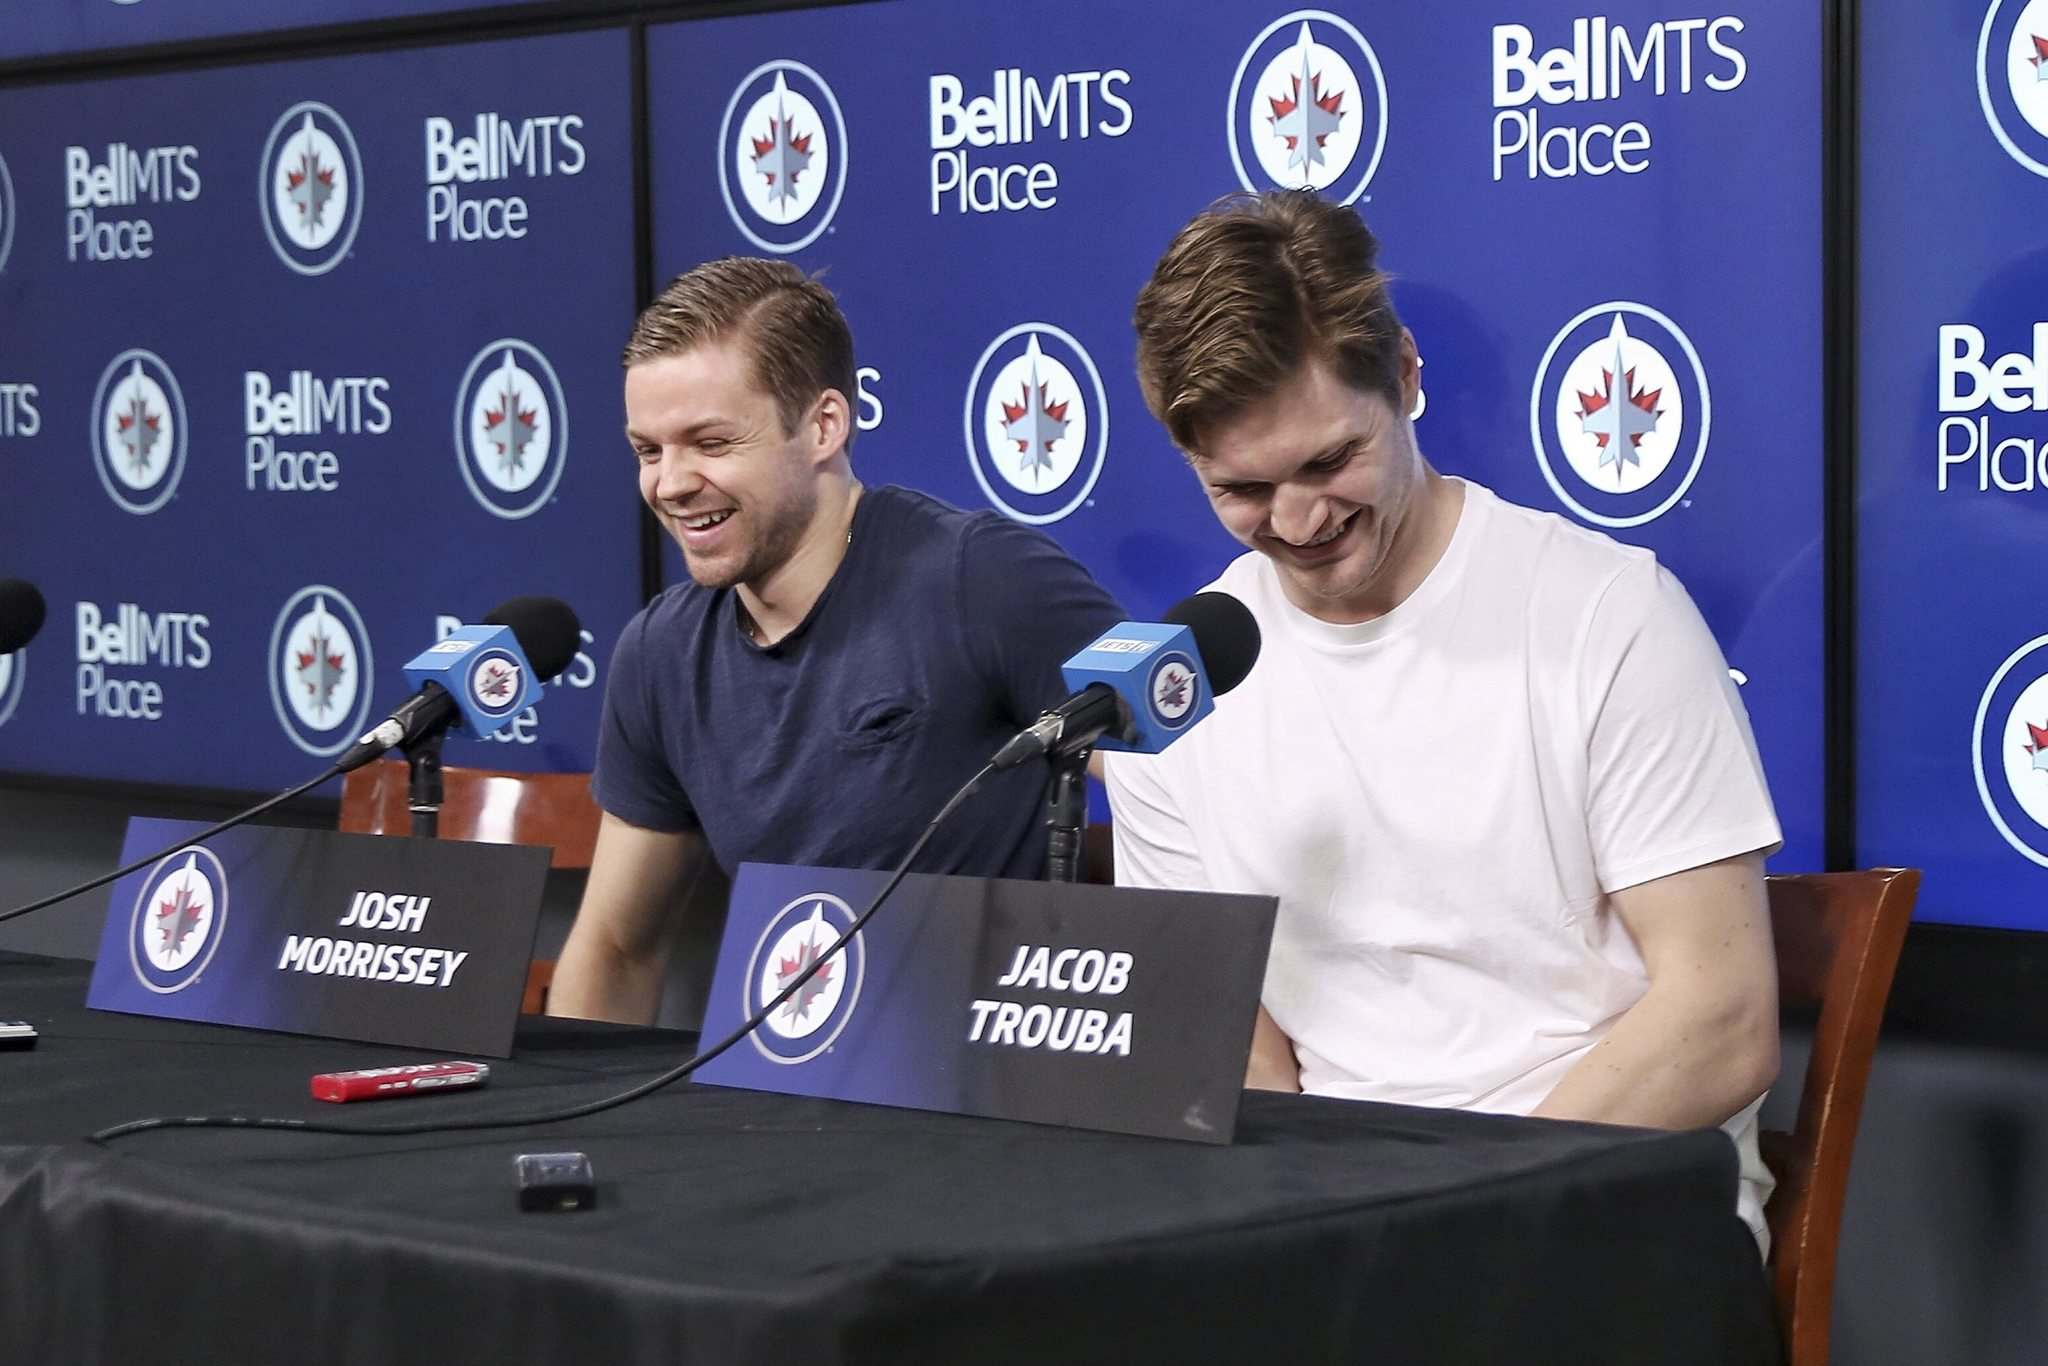 Jacob Trouba (right) and Josh Morrissey at their final press conference of the season at Bell MTS Place on Tuesday. (Mike Deal / Winnipeg Free Press) </p>